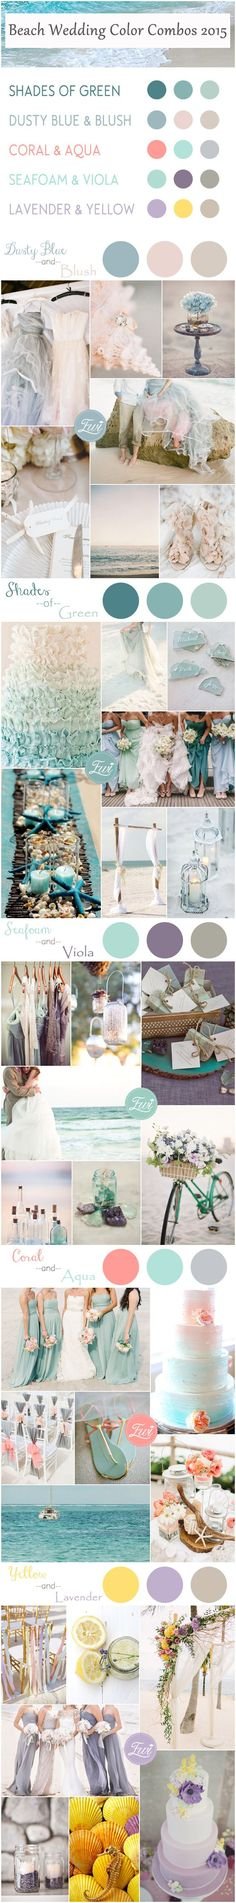 Top 5 Beach Themed Wedding Color Ideas for Summer 2015